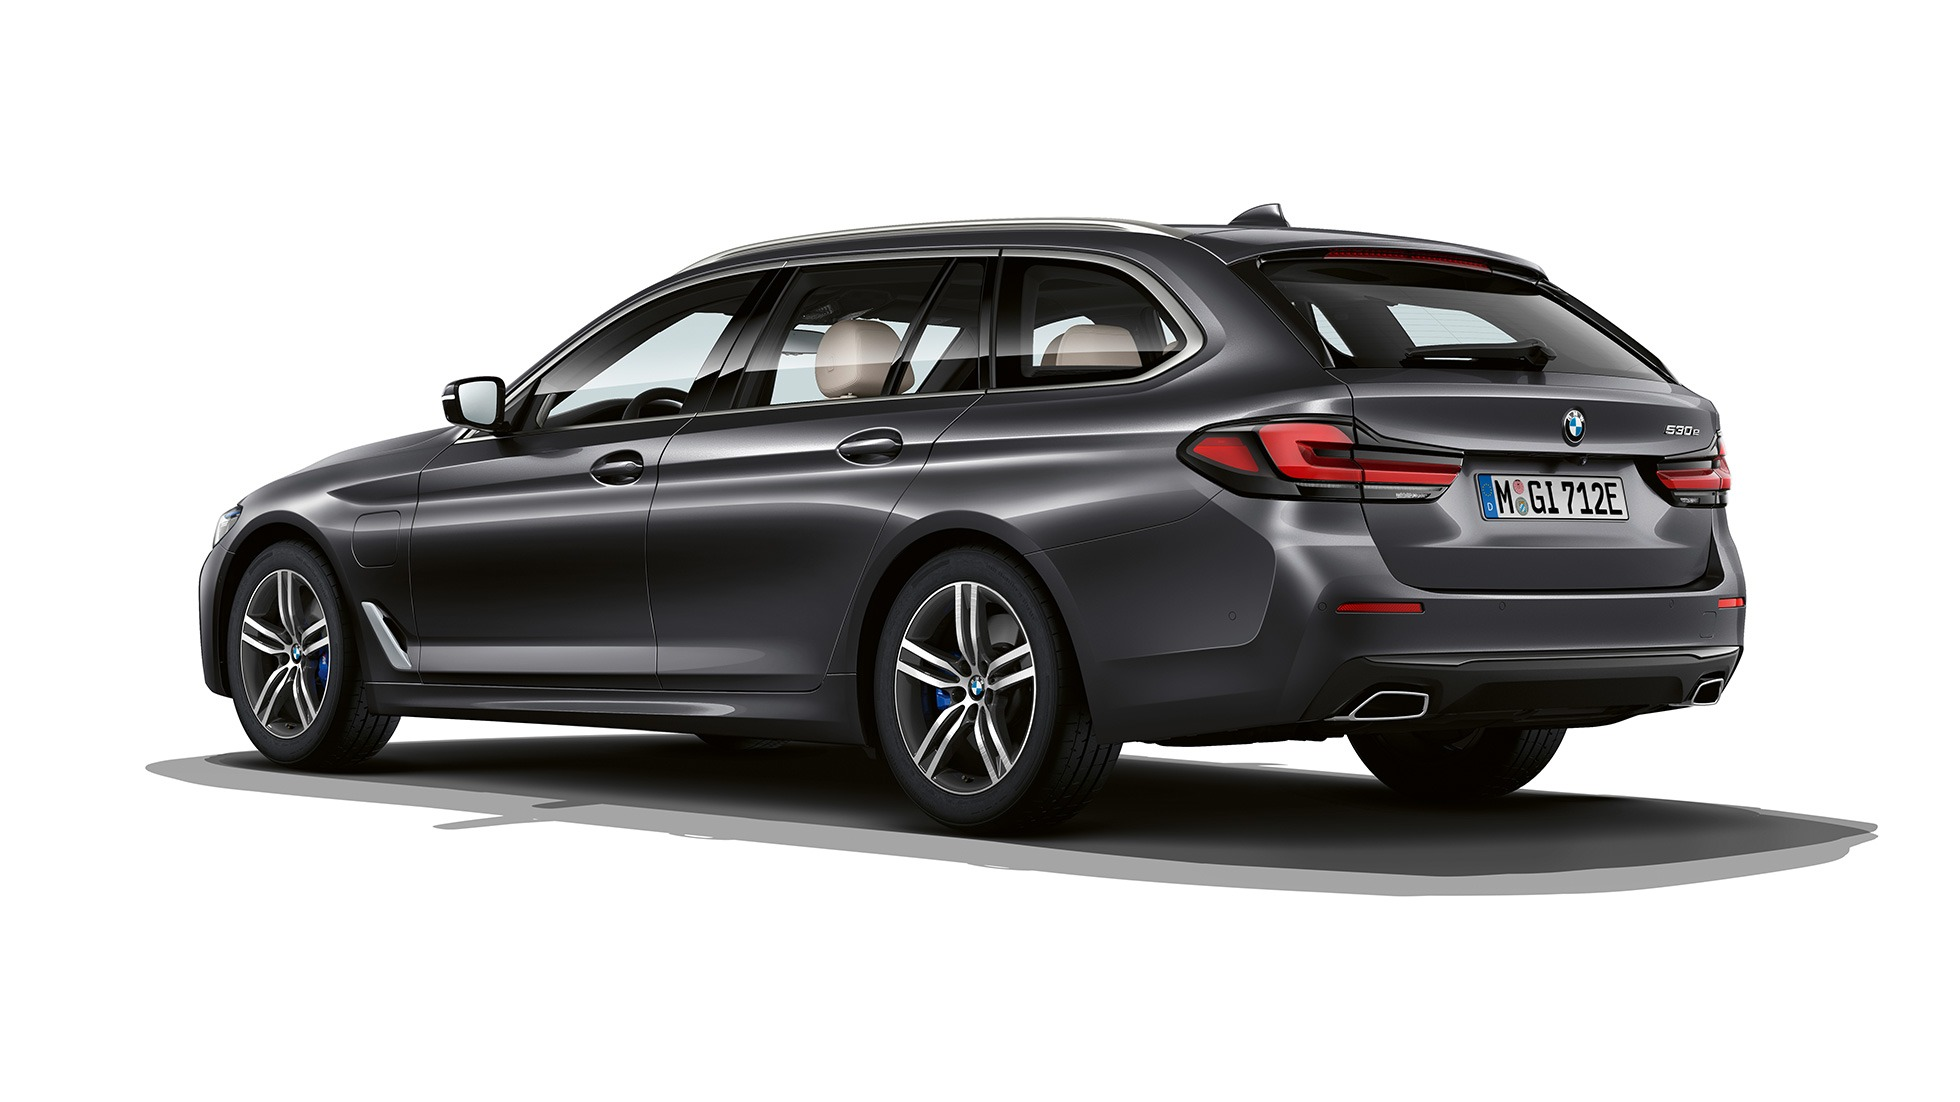 bmw-5-series-touring-models-and-equipment-lines-01-02